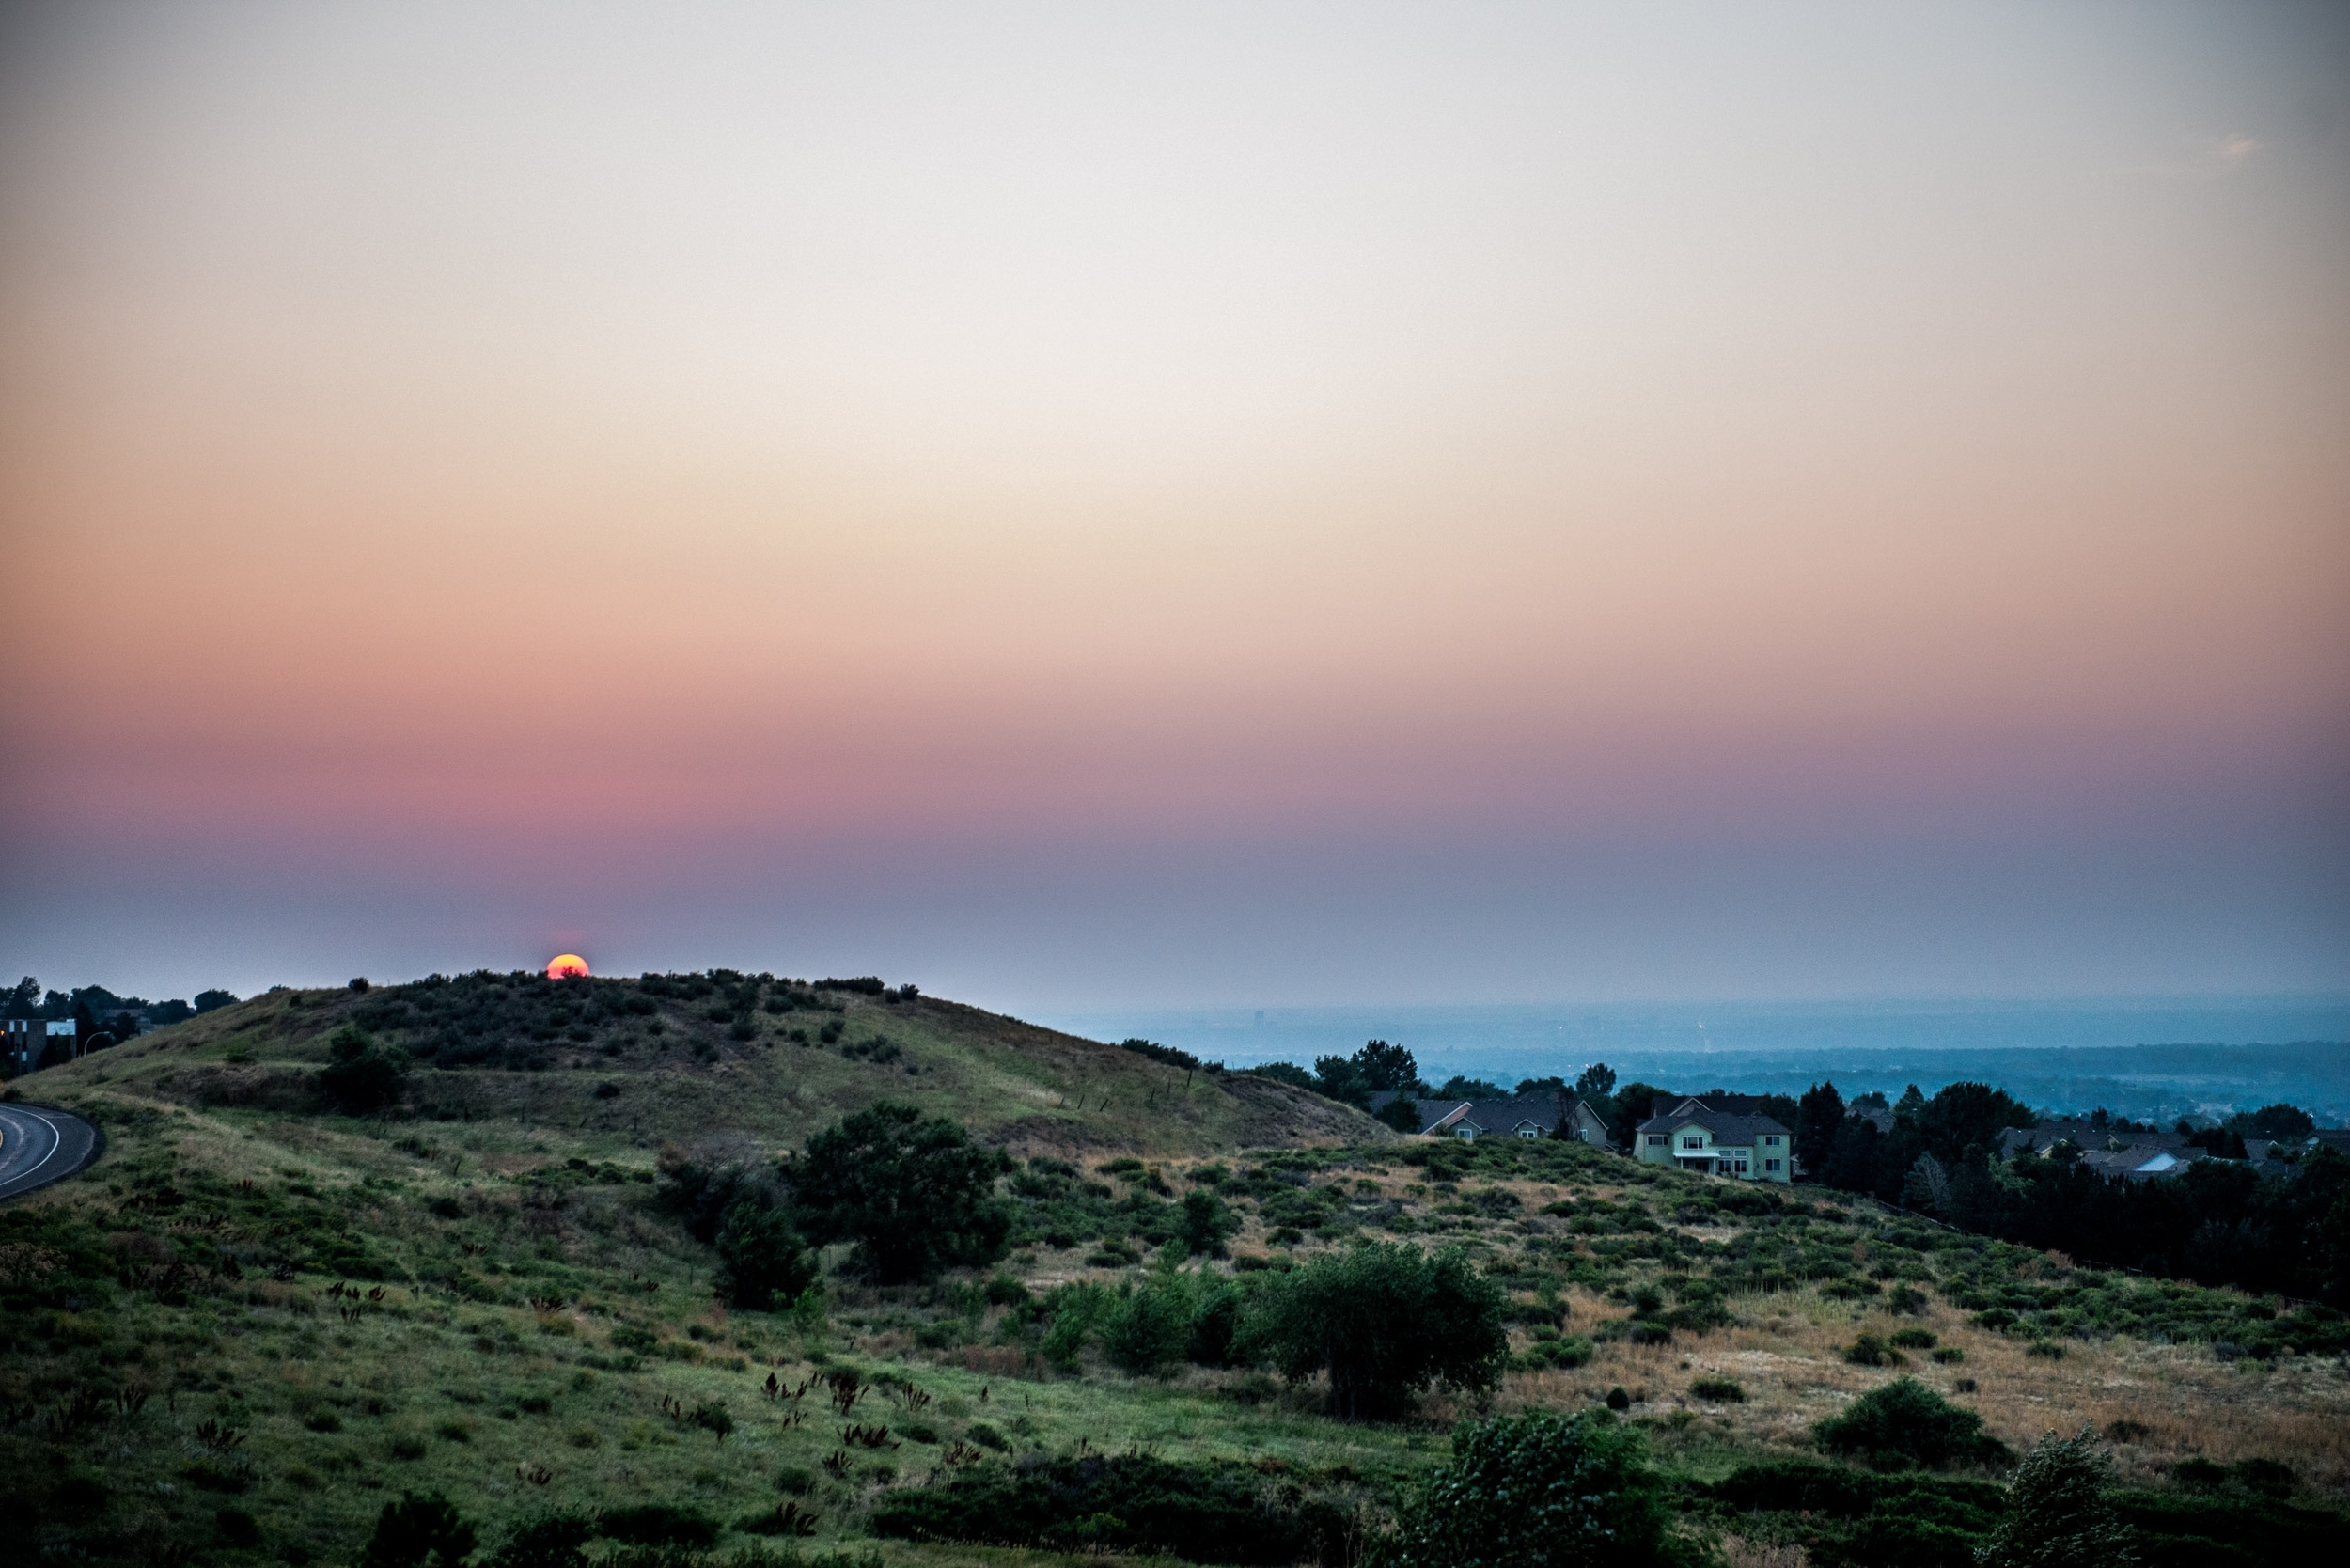 Sunset comes to the foothills of Solterra in Lakewood, CO